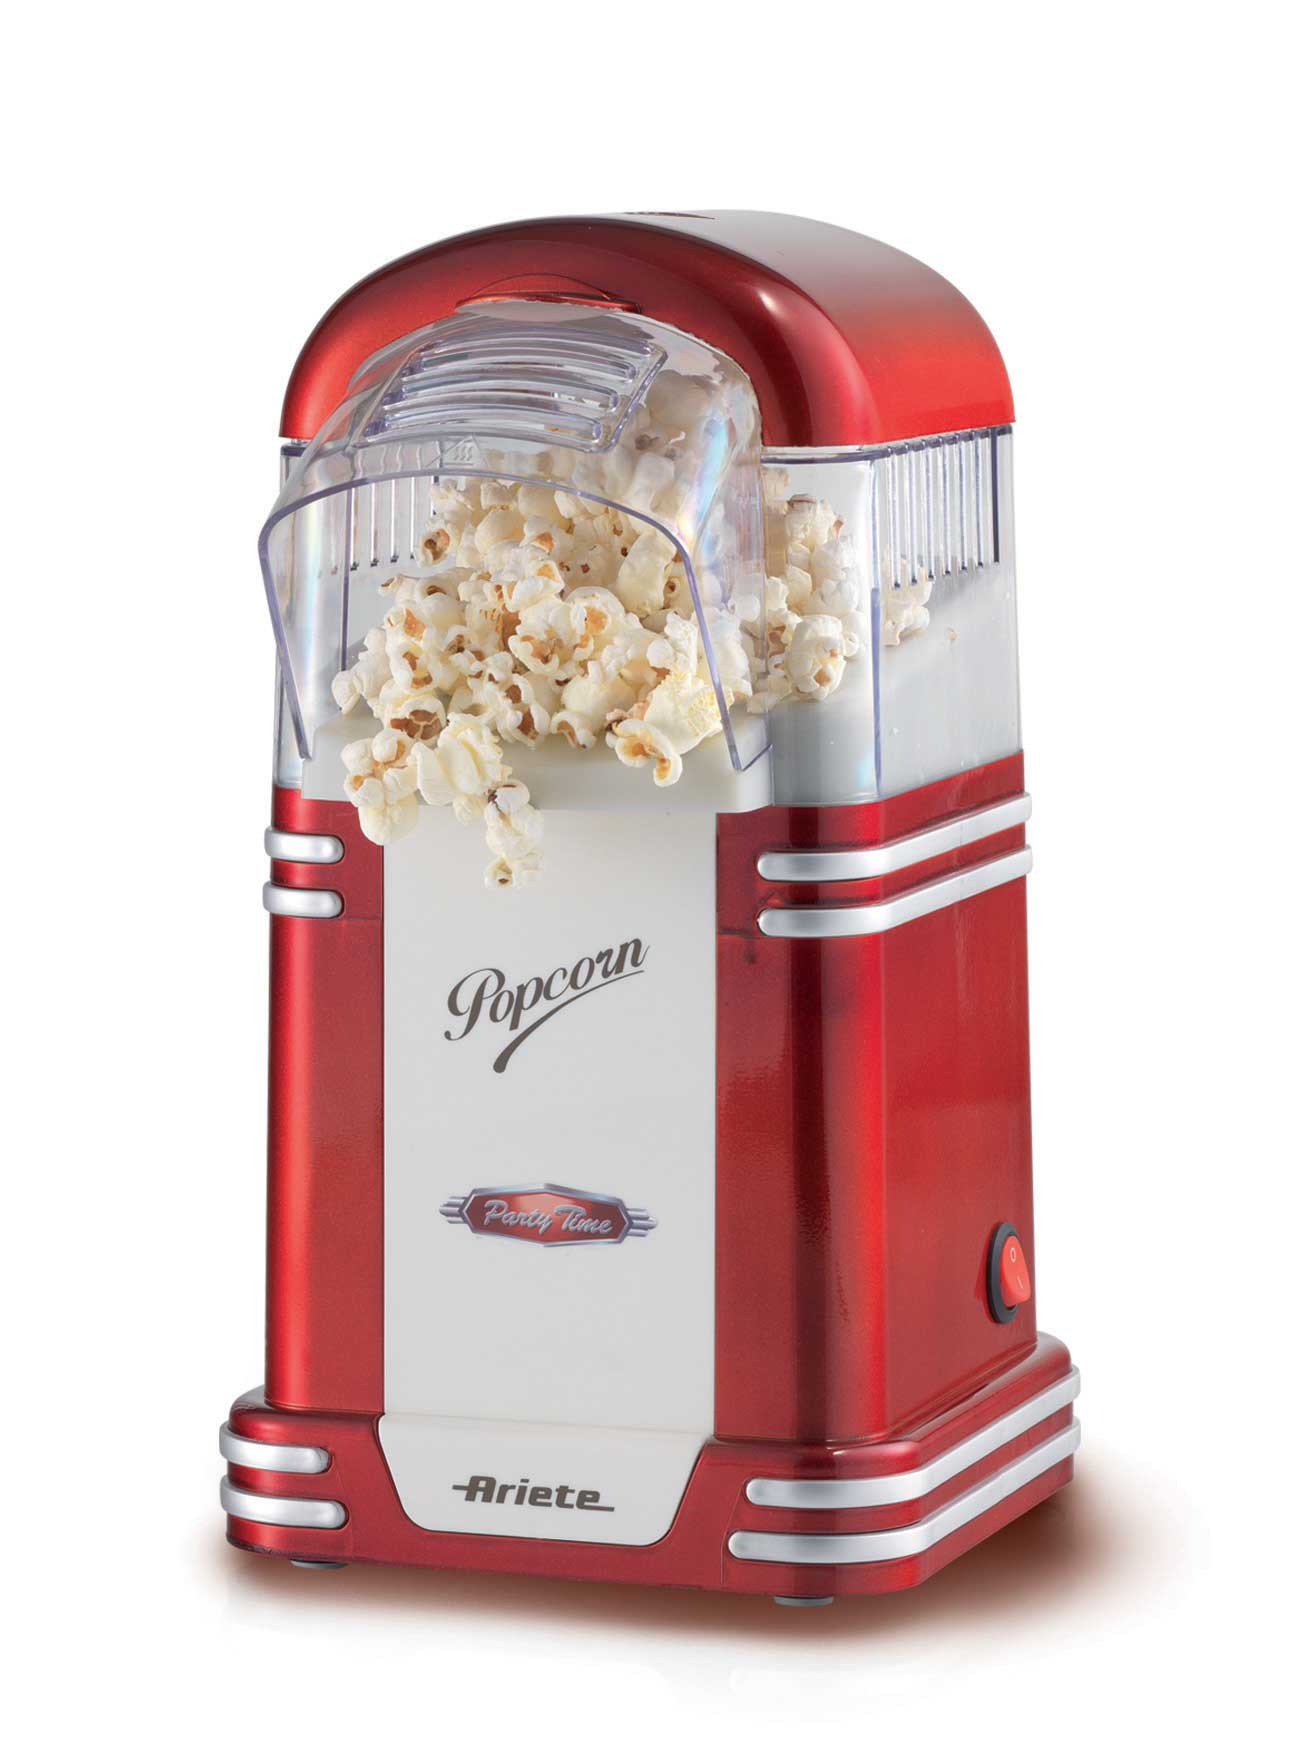 Pop corn ariete